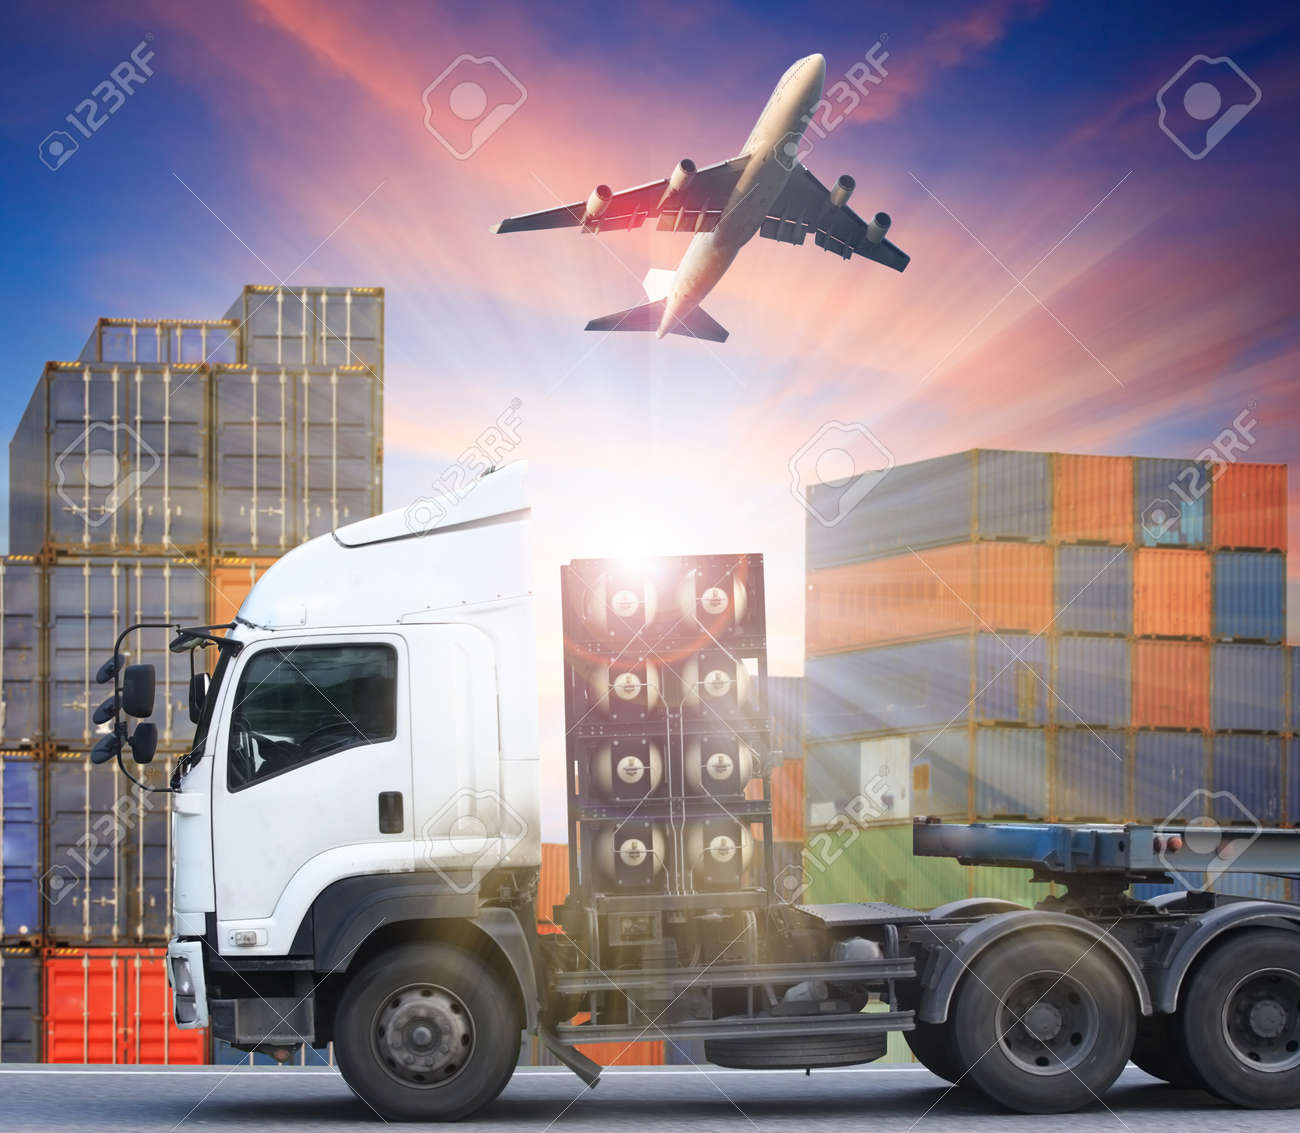 container truck and freight cargo plane concept of import-export commercial logistic ,shipping business industry - 47668755